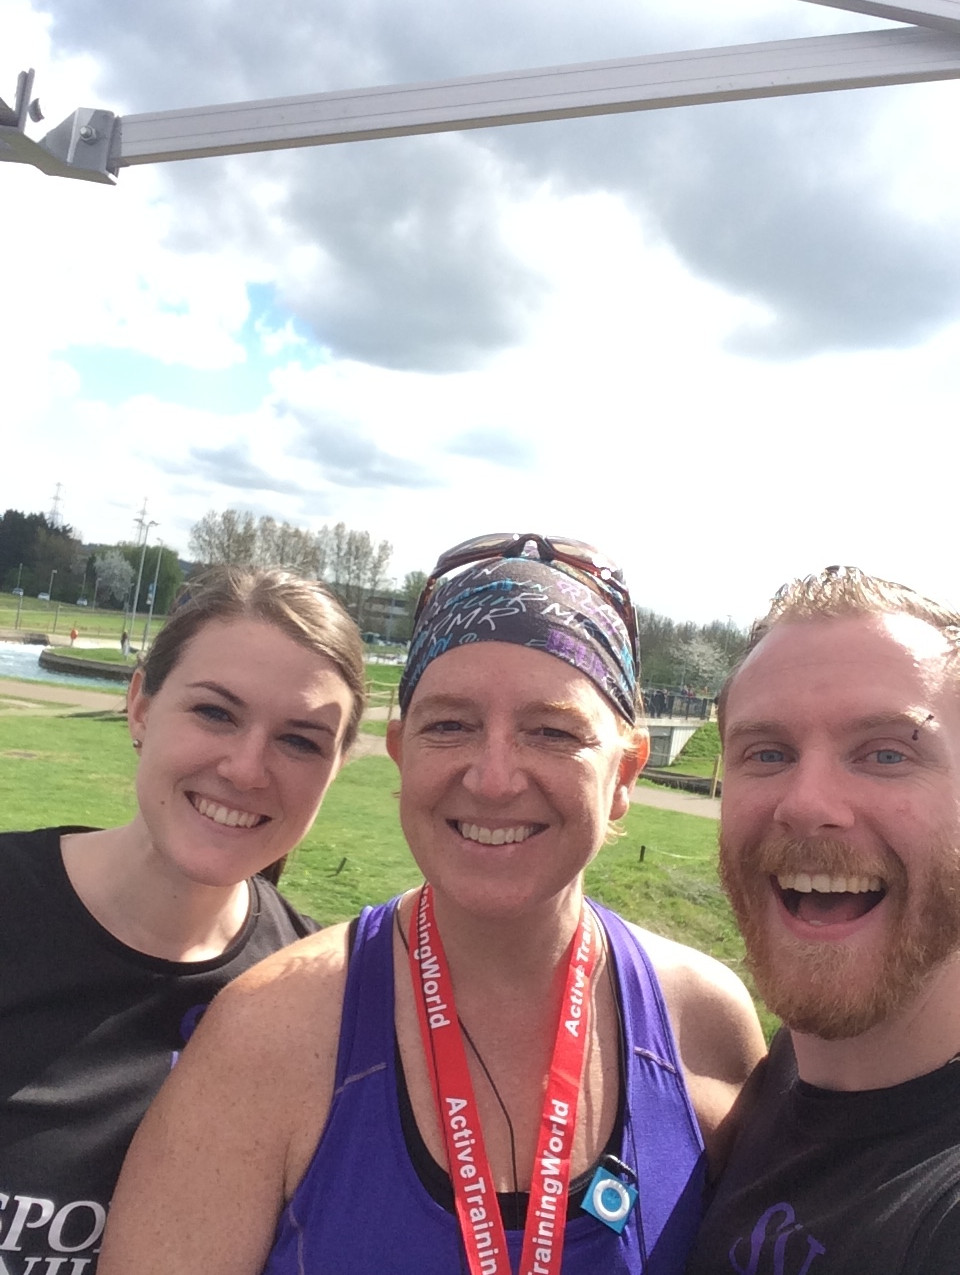 Jess, Maxine and Chris at RunFest